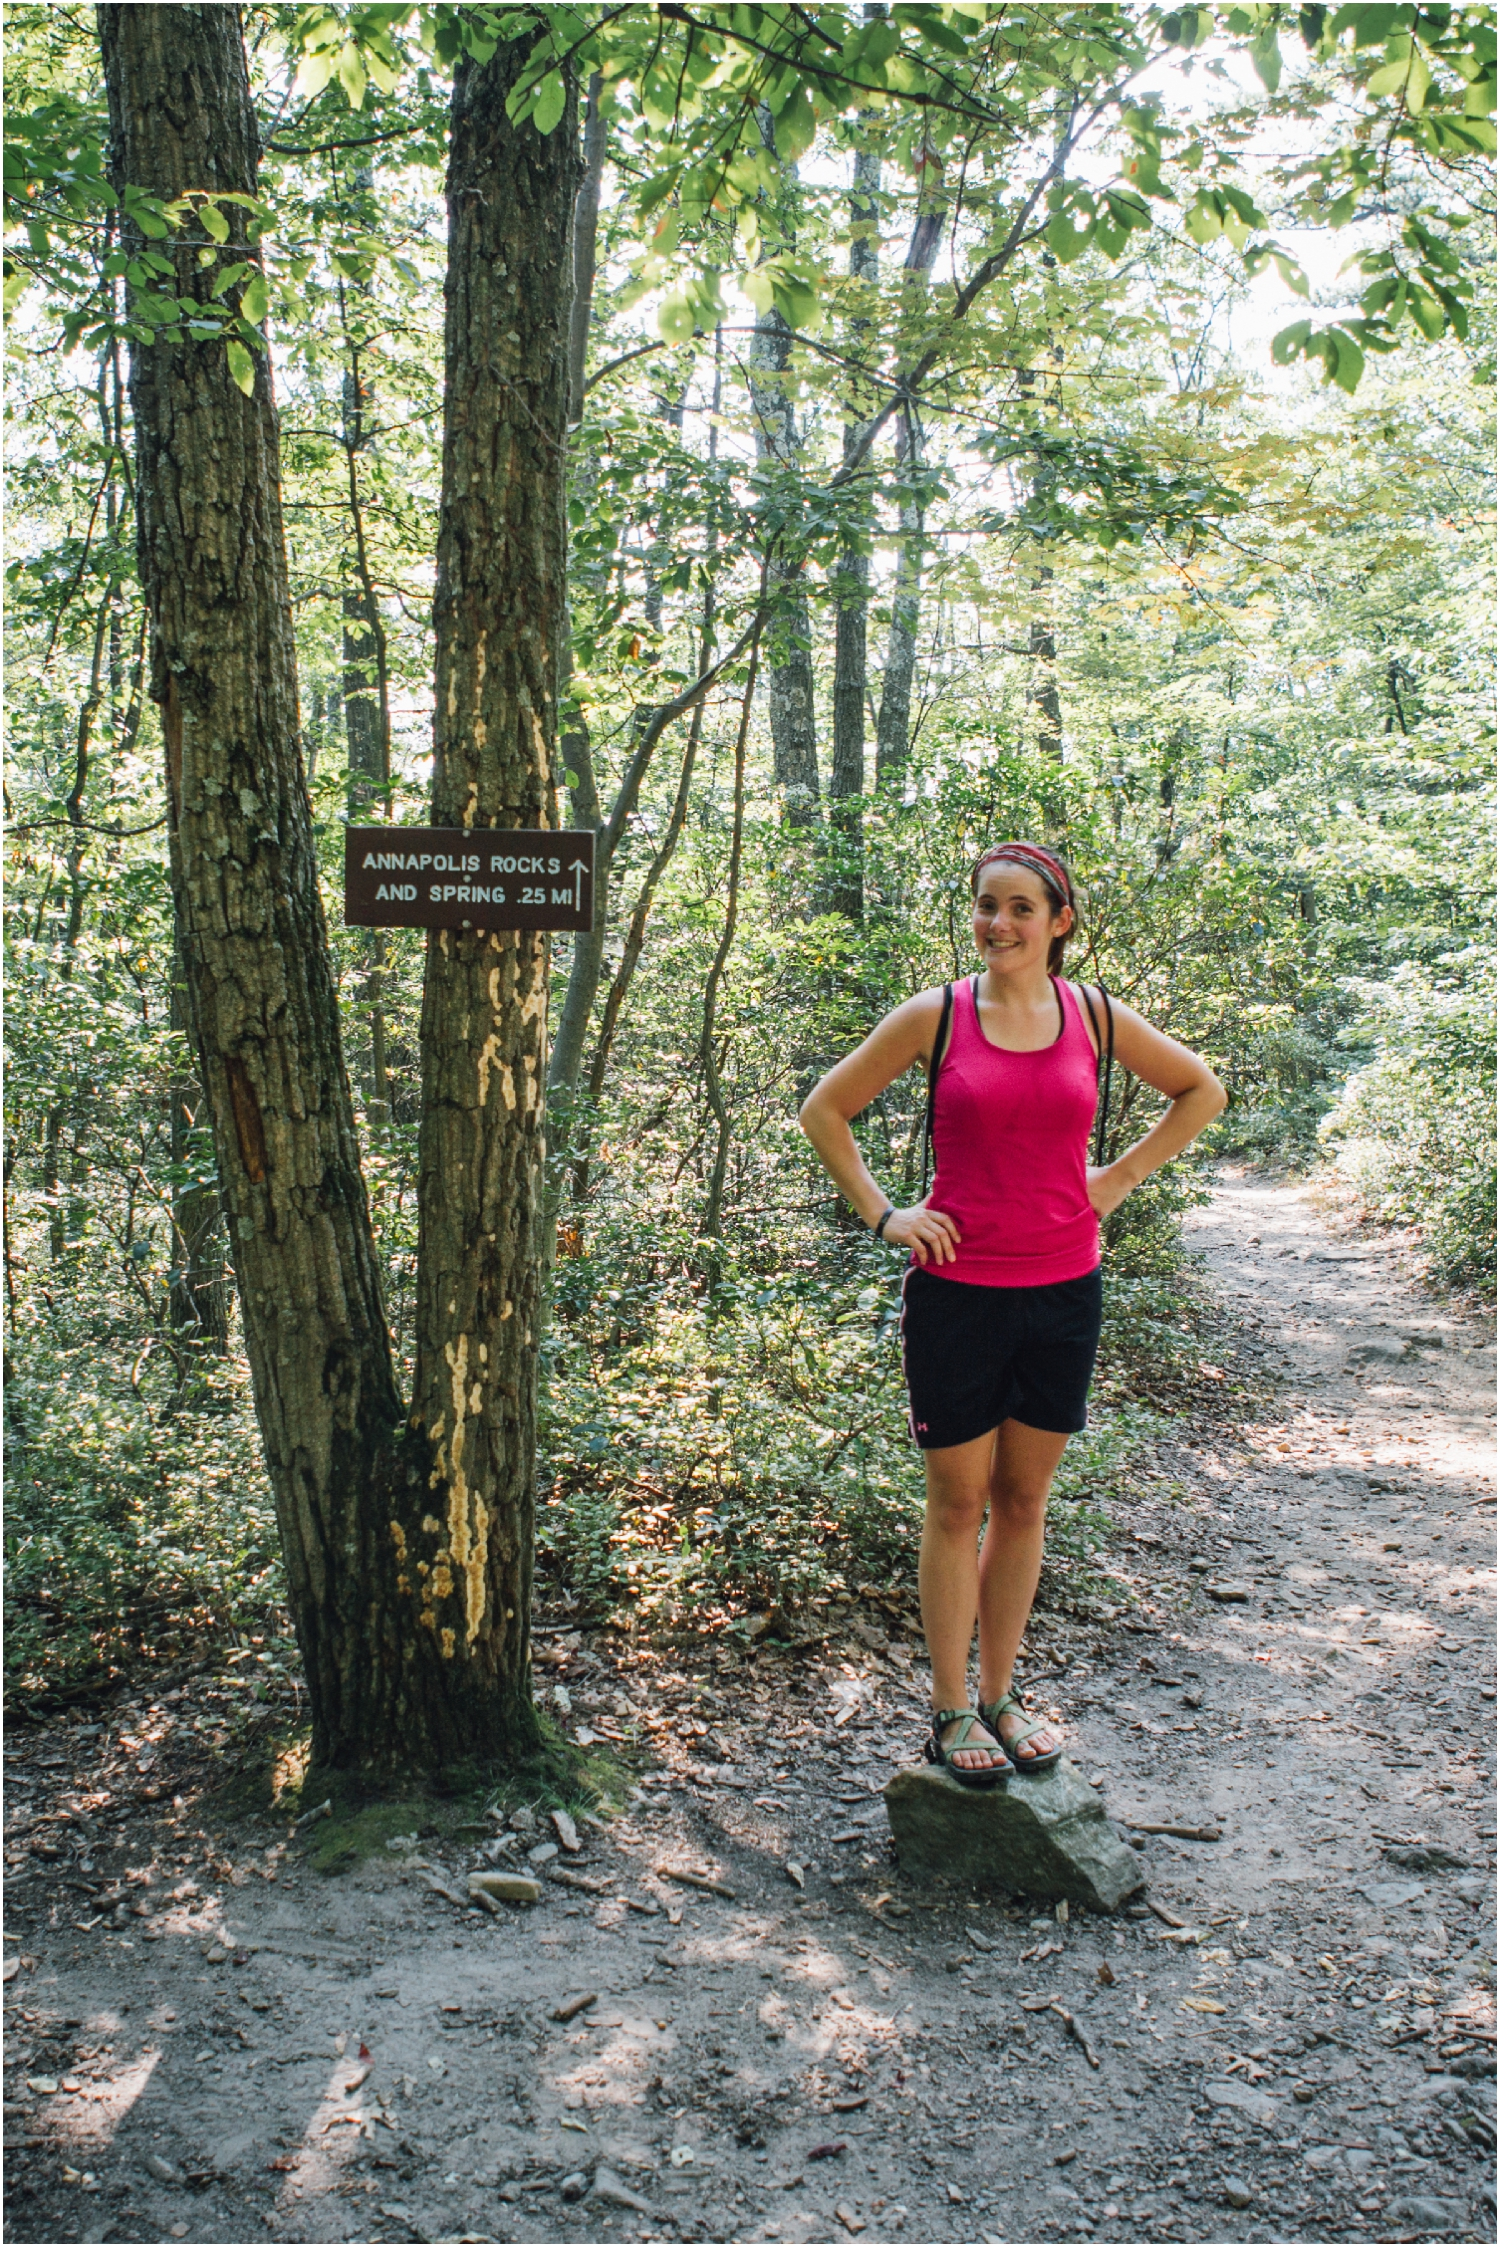 katy-sergent-photography-proposal-appalachian-trail-annapolis-rocks-adventurous-wedding-couples-intimate-elopement-hiking-backpacking-camping-photographer-johnson-city-tn-northeast-tennessee_0012.jpg